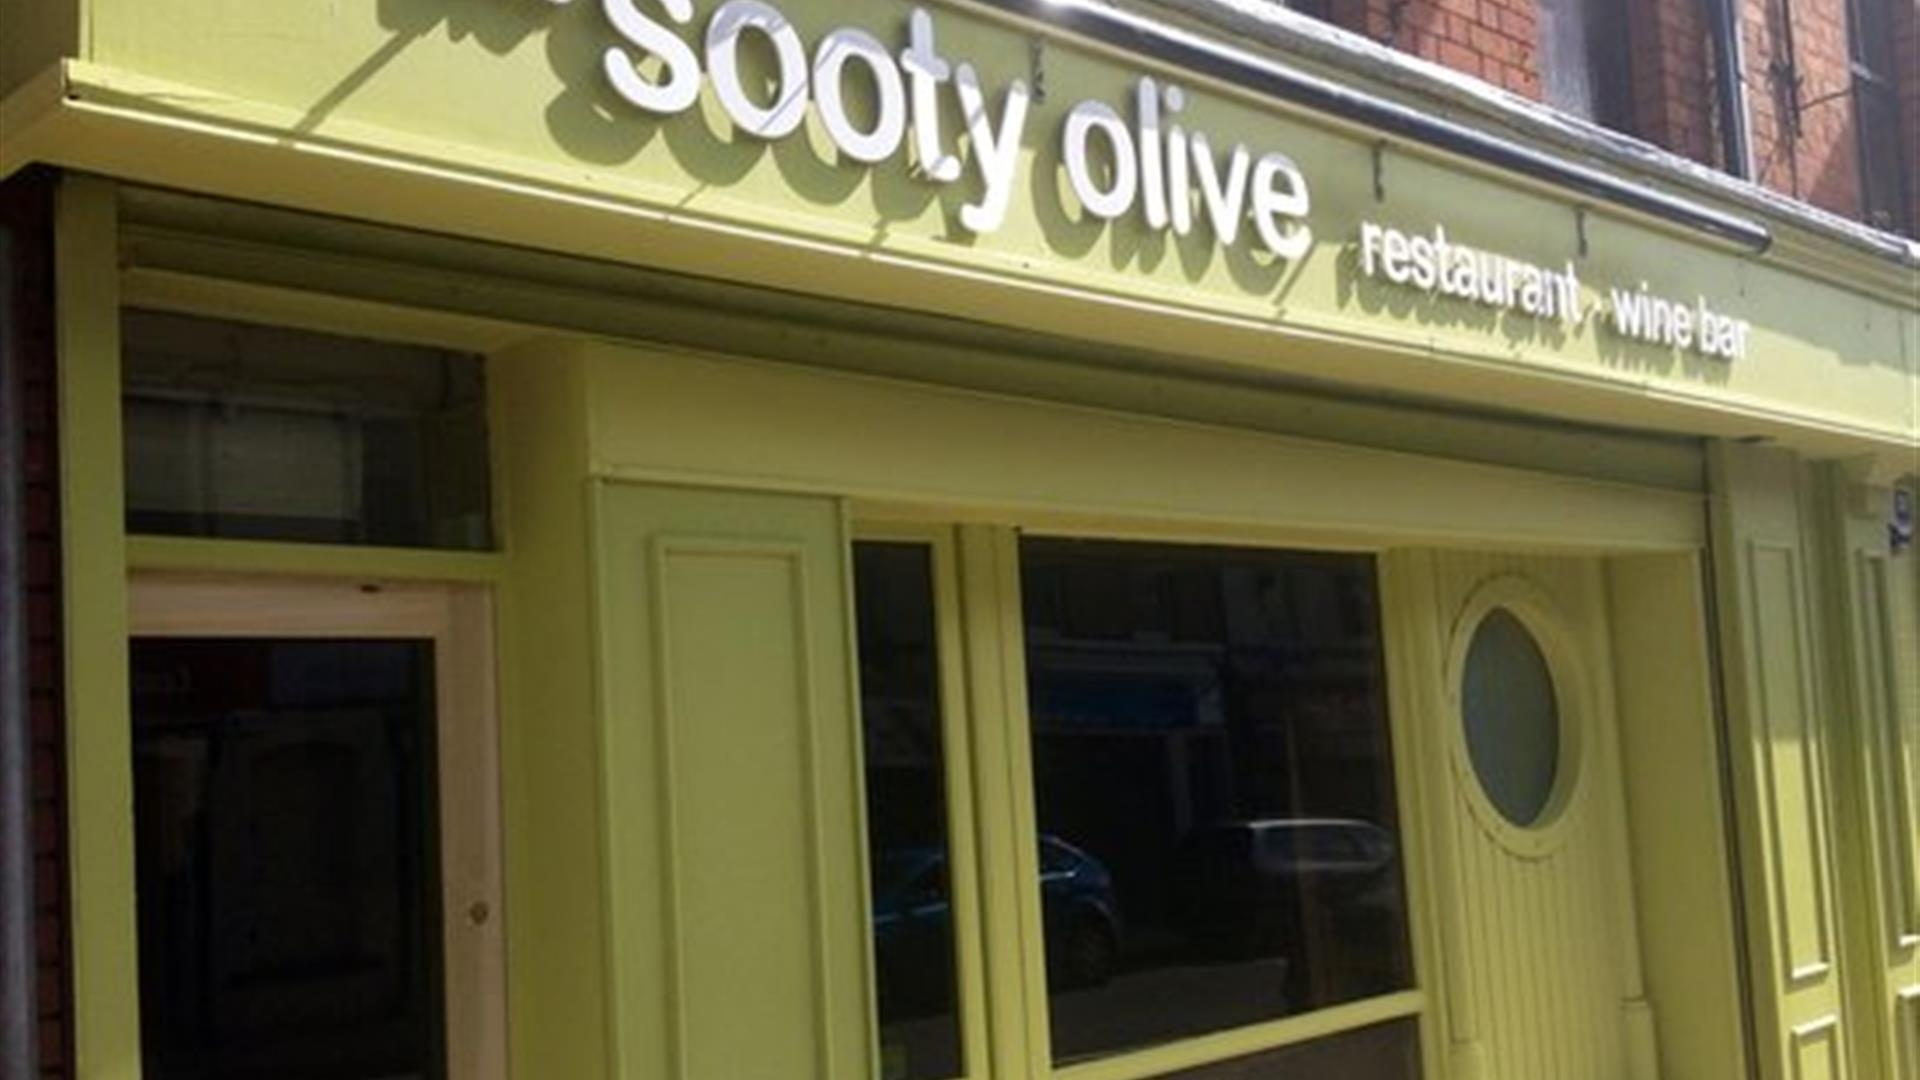 The Sooty Olive Restaurant and Winebar